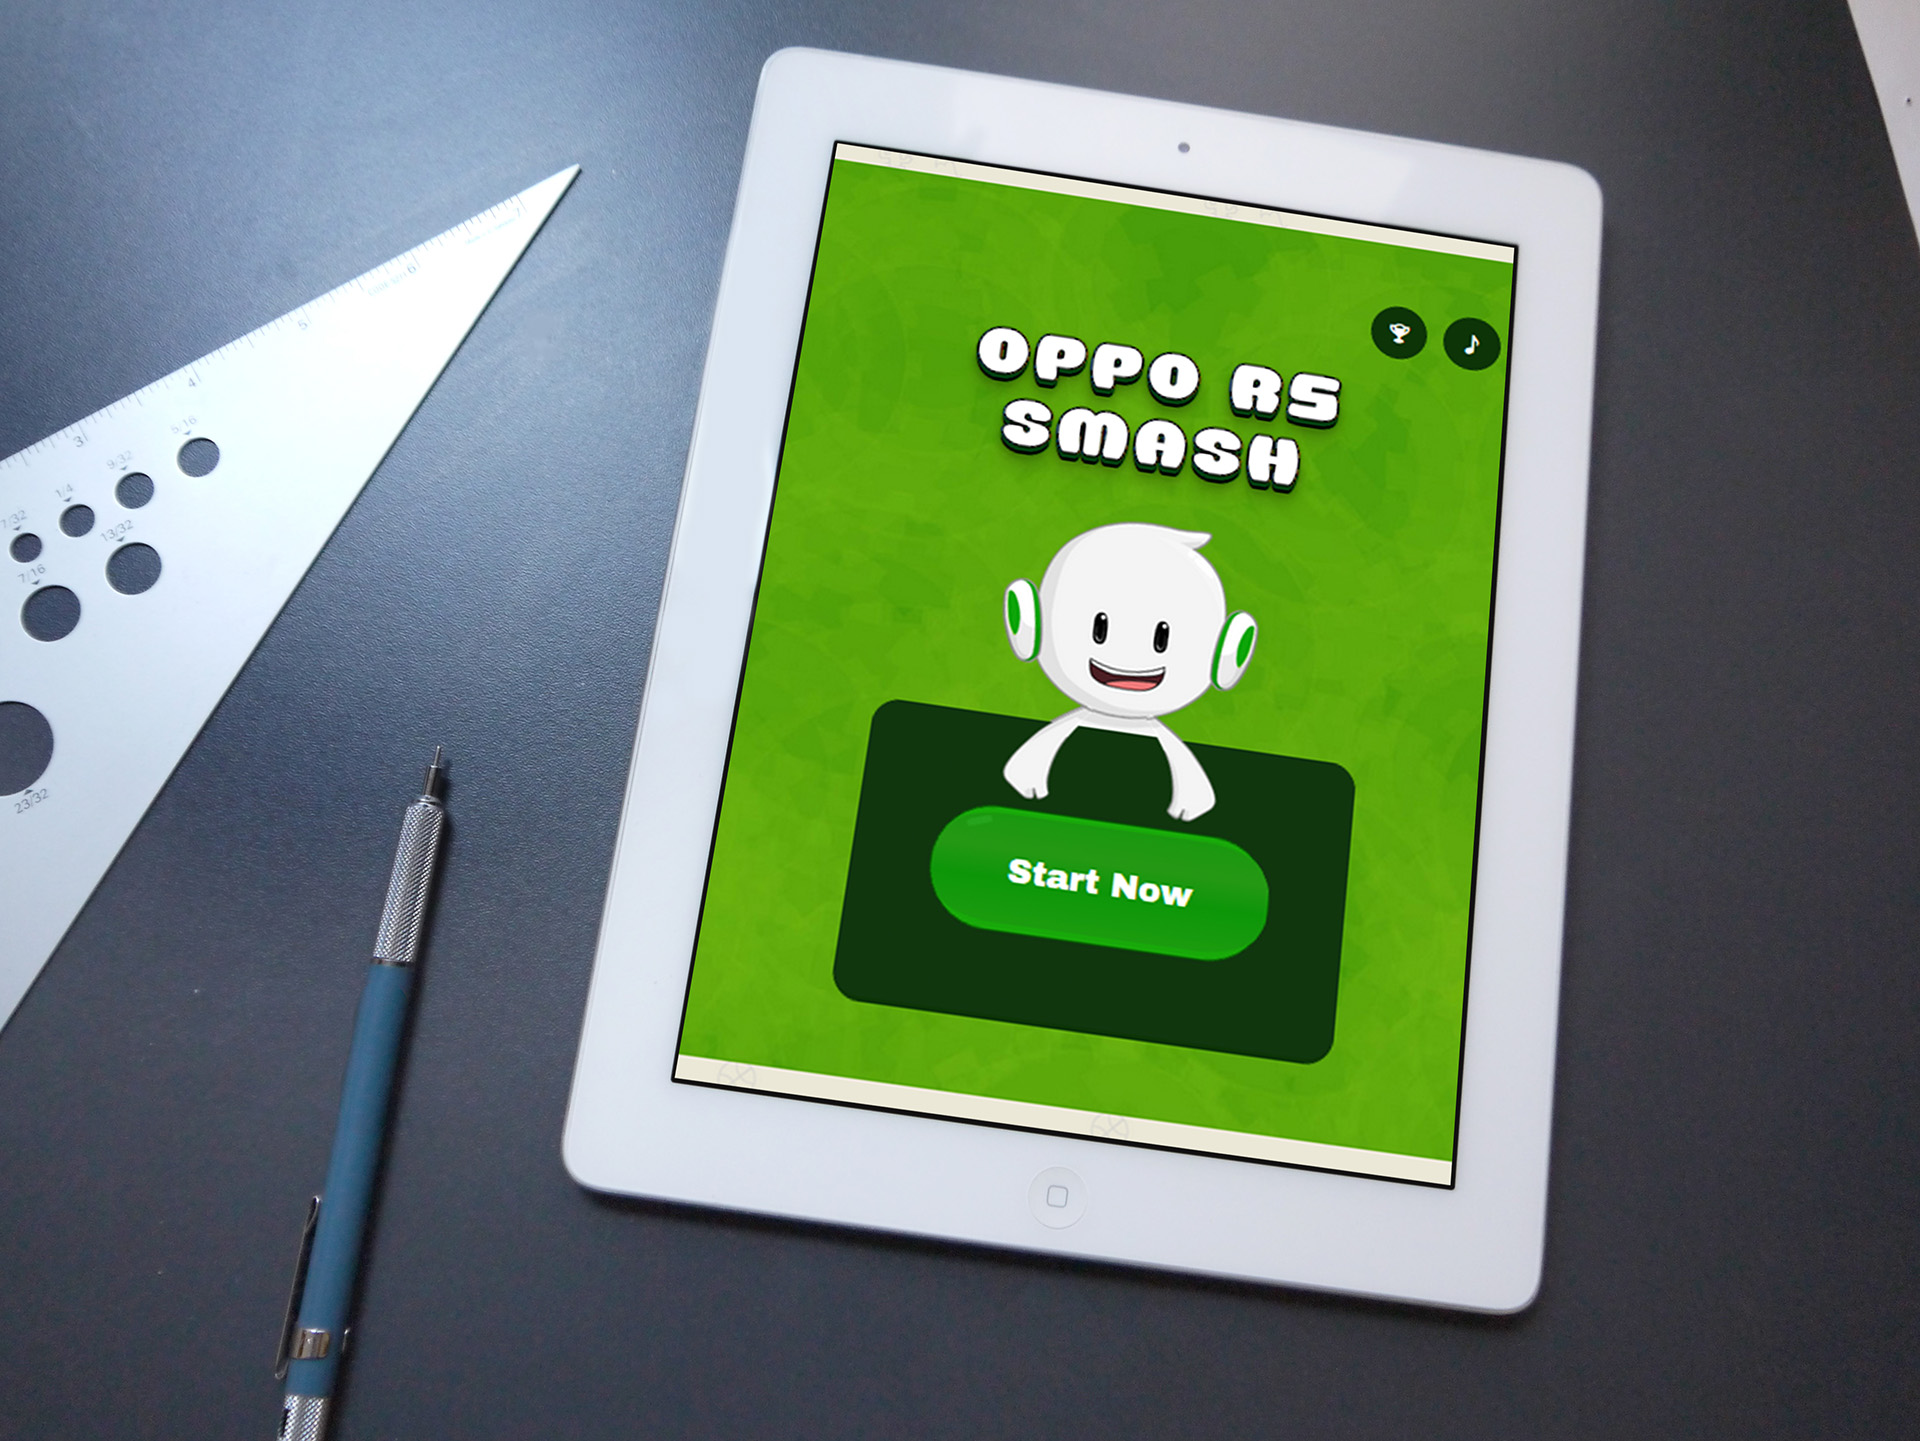 Oppo R5 Smash web game project start screen displayed on iPad